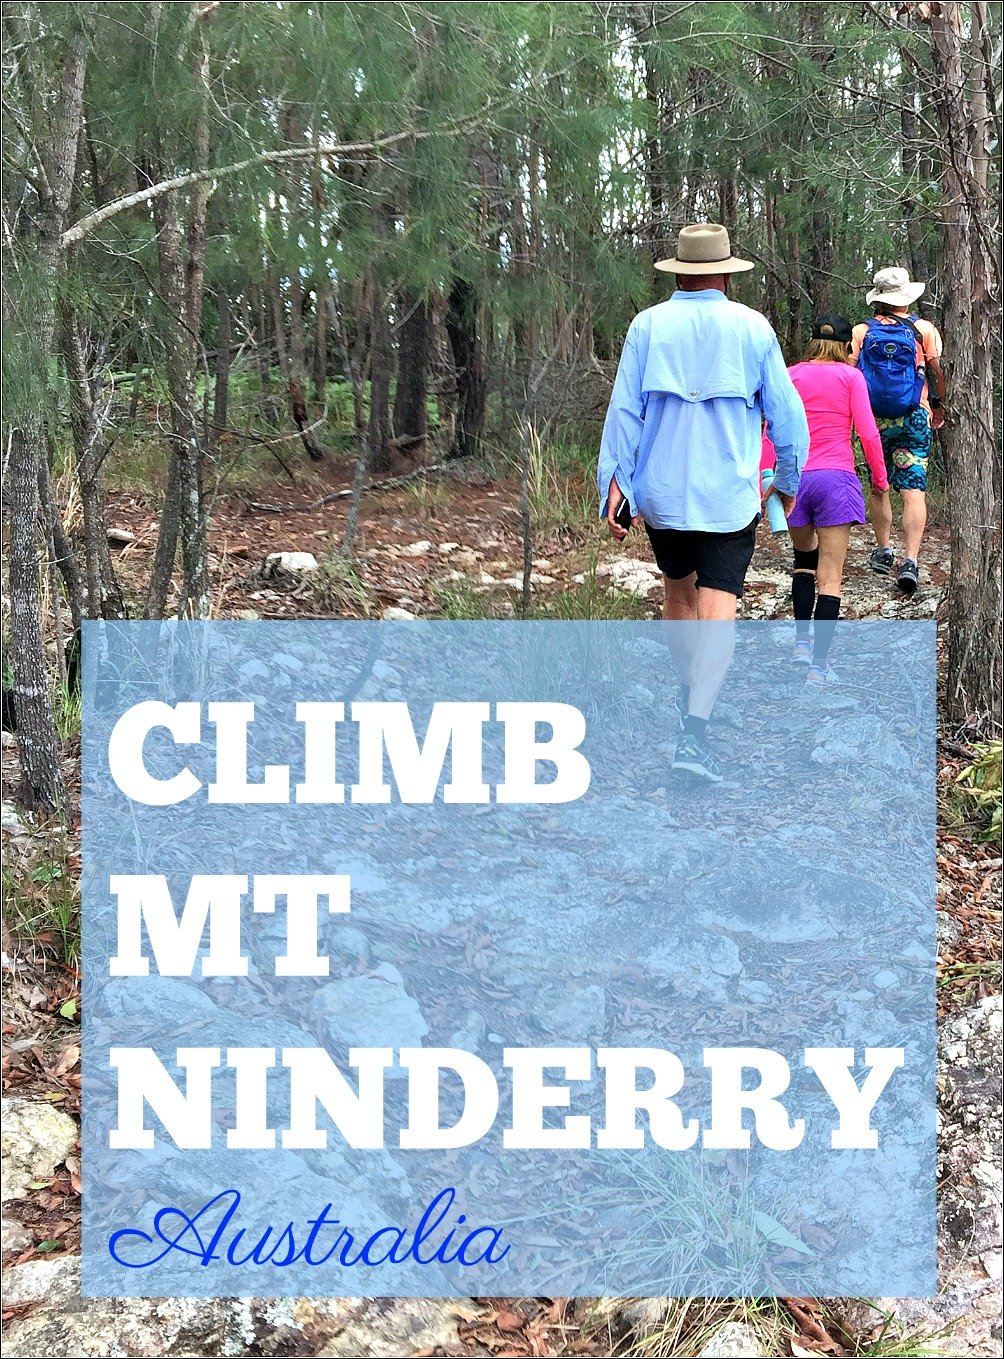 Climb Mt Ninderry Australia with it's wonderful coastal and hinterland views and then afterwards explore the cute country town of Yandina. Yandina has an exciting alternative vibe with community permaculture garden, gazillion coffee spots and second hand shops.